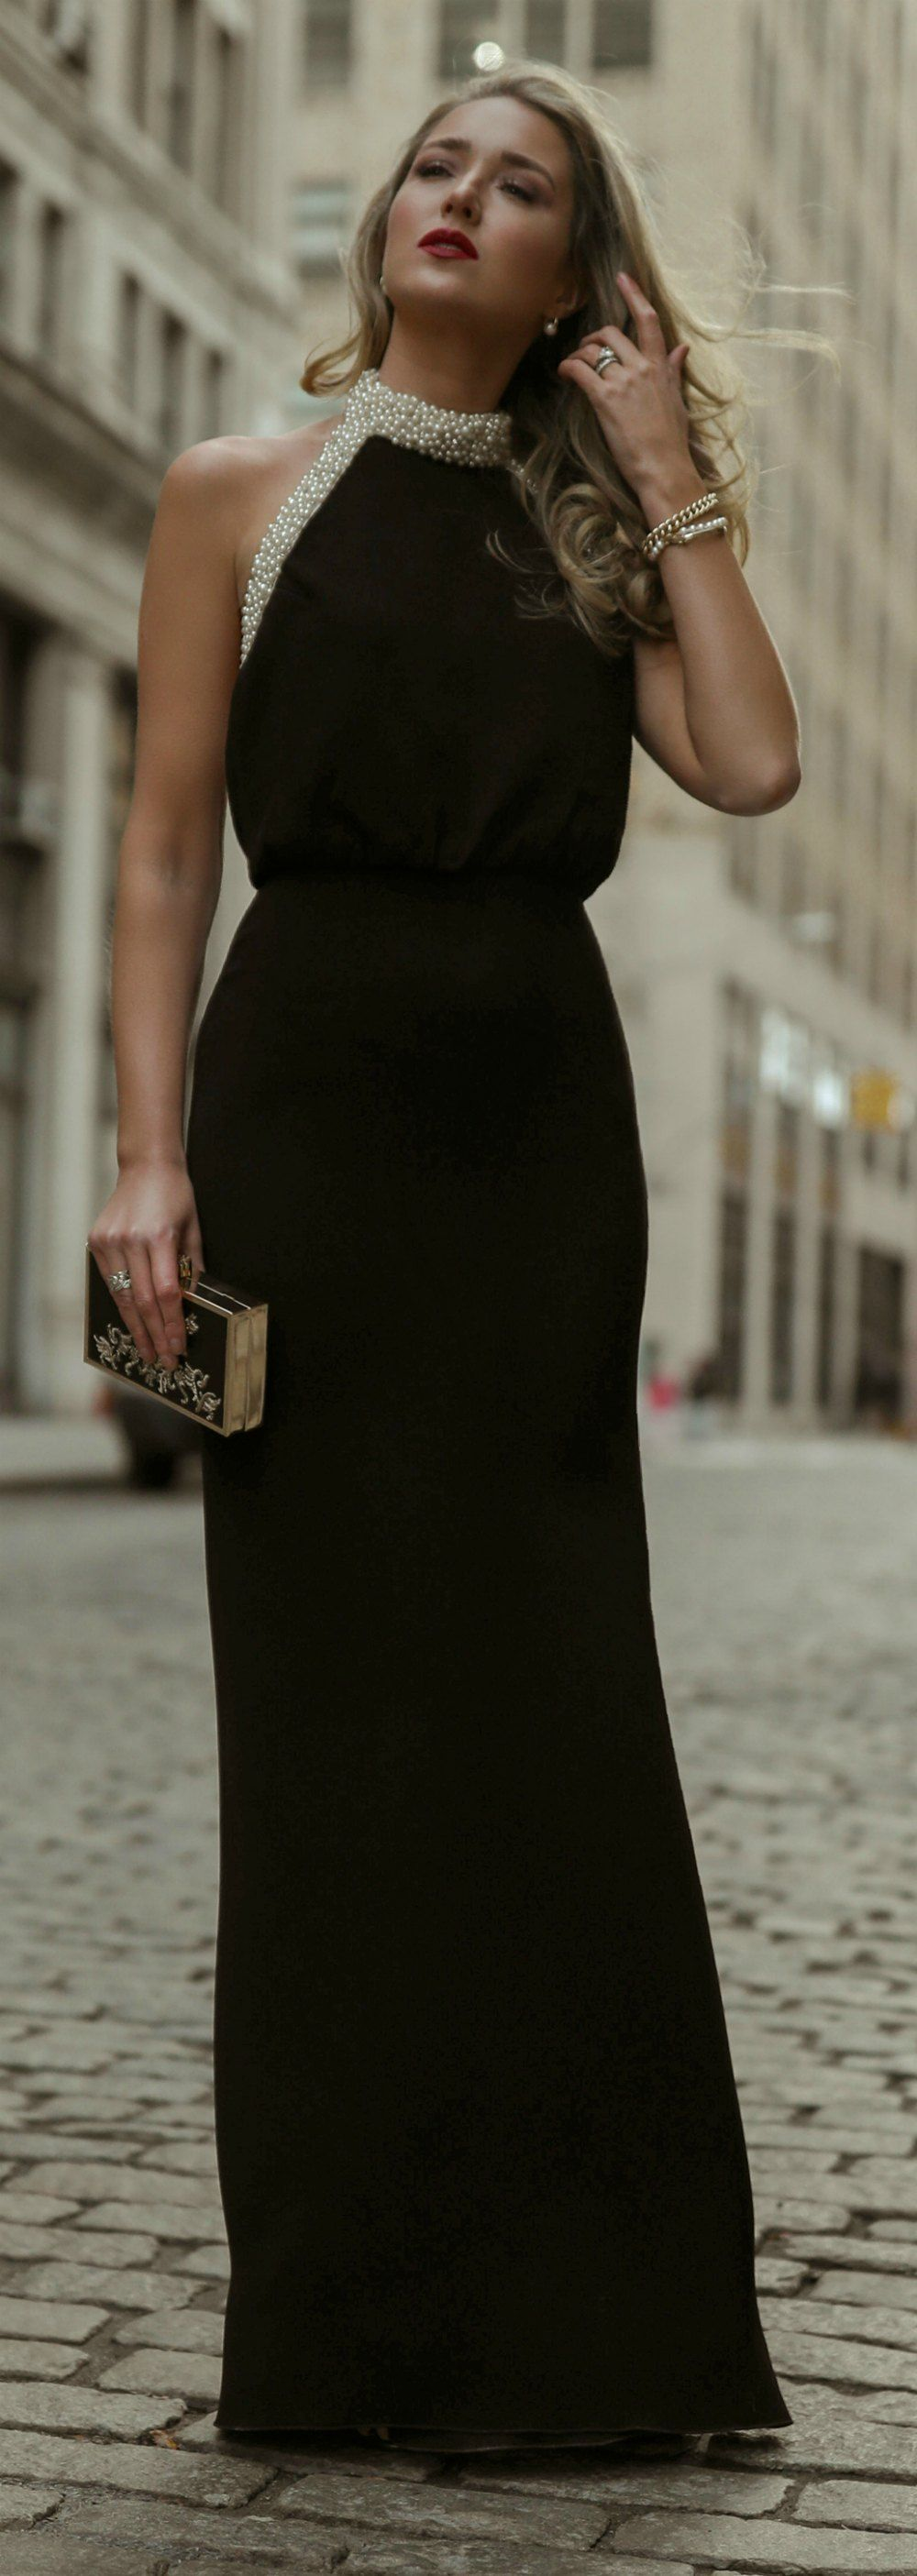 Day 17 Corporate Charity Black Backless Gown With A Glamorous Pearl Encrusted Halter Neck Black Gold Clutch Purse Gold Fashion Dresses Fashion Outfits [ 2810 x 1000 Pixel ]